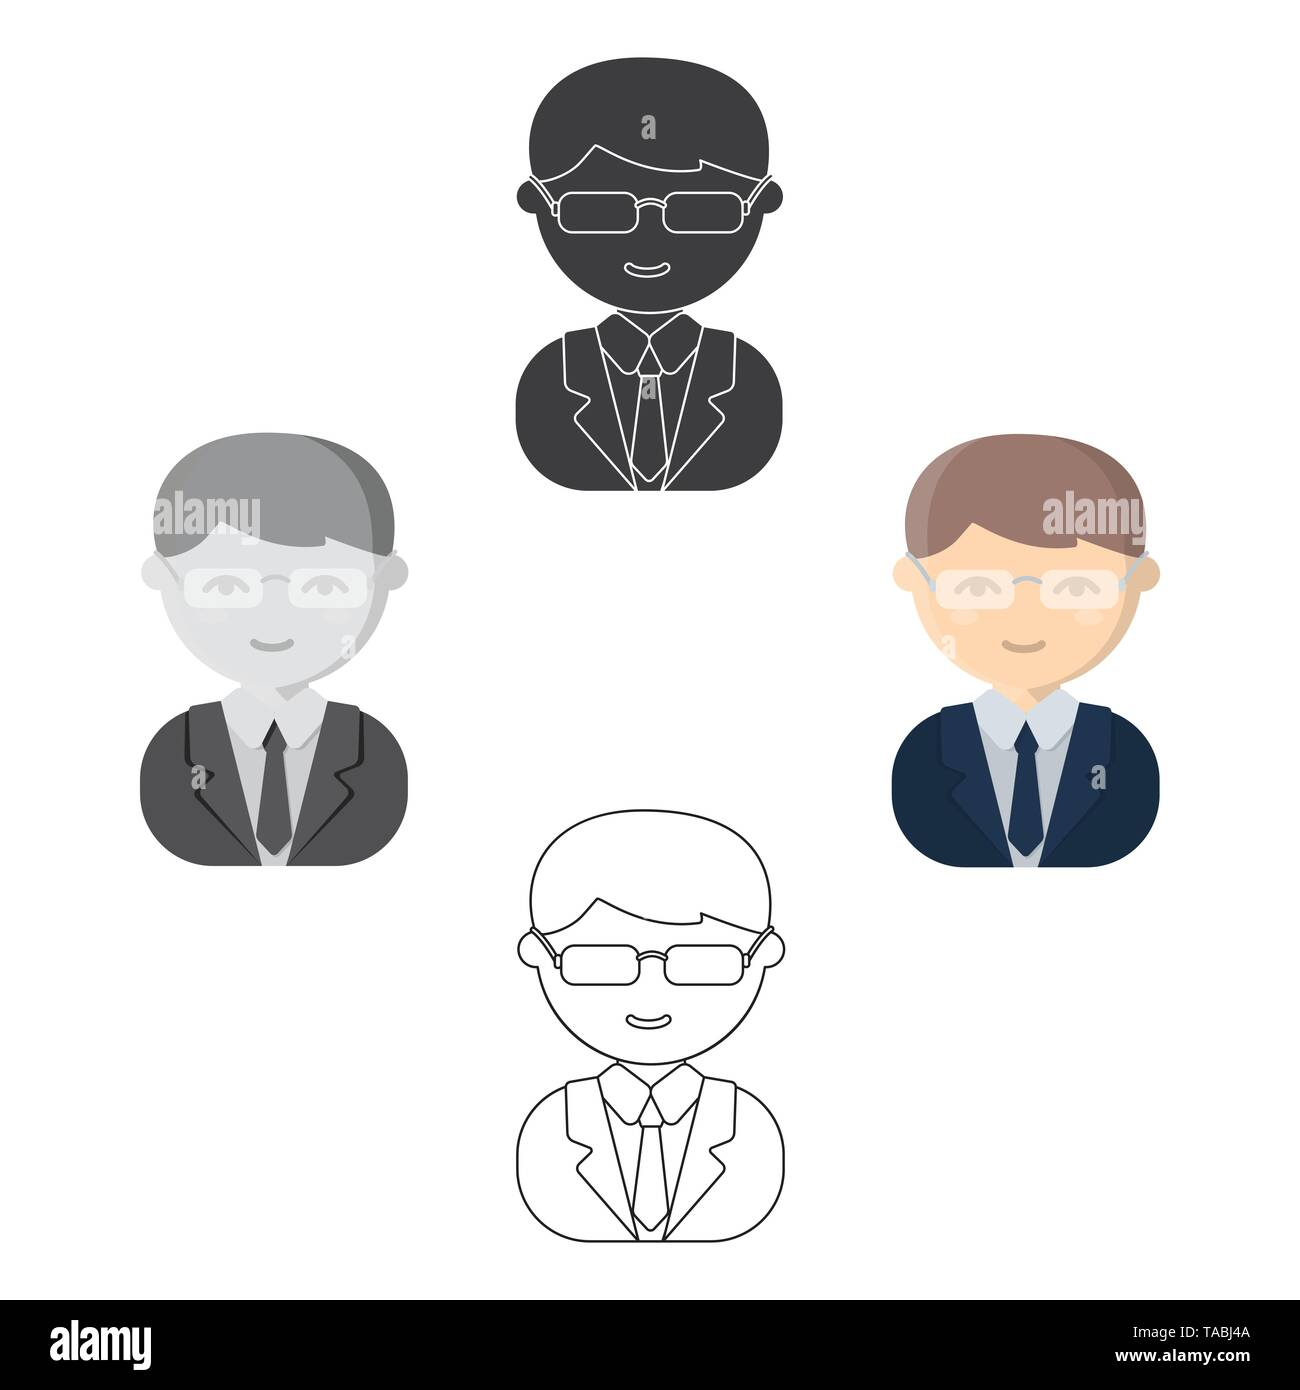 Business man cartoon,black icon. Illustration for web and mobile. - Stock Image